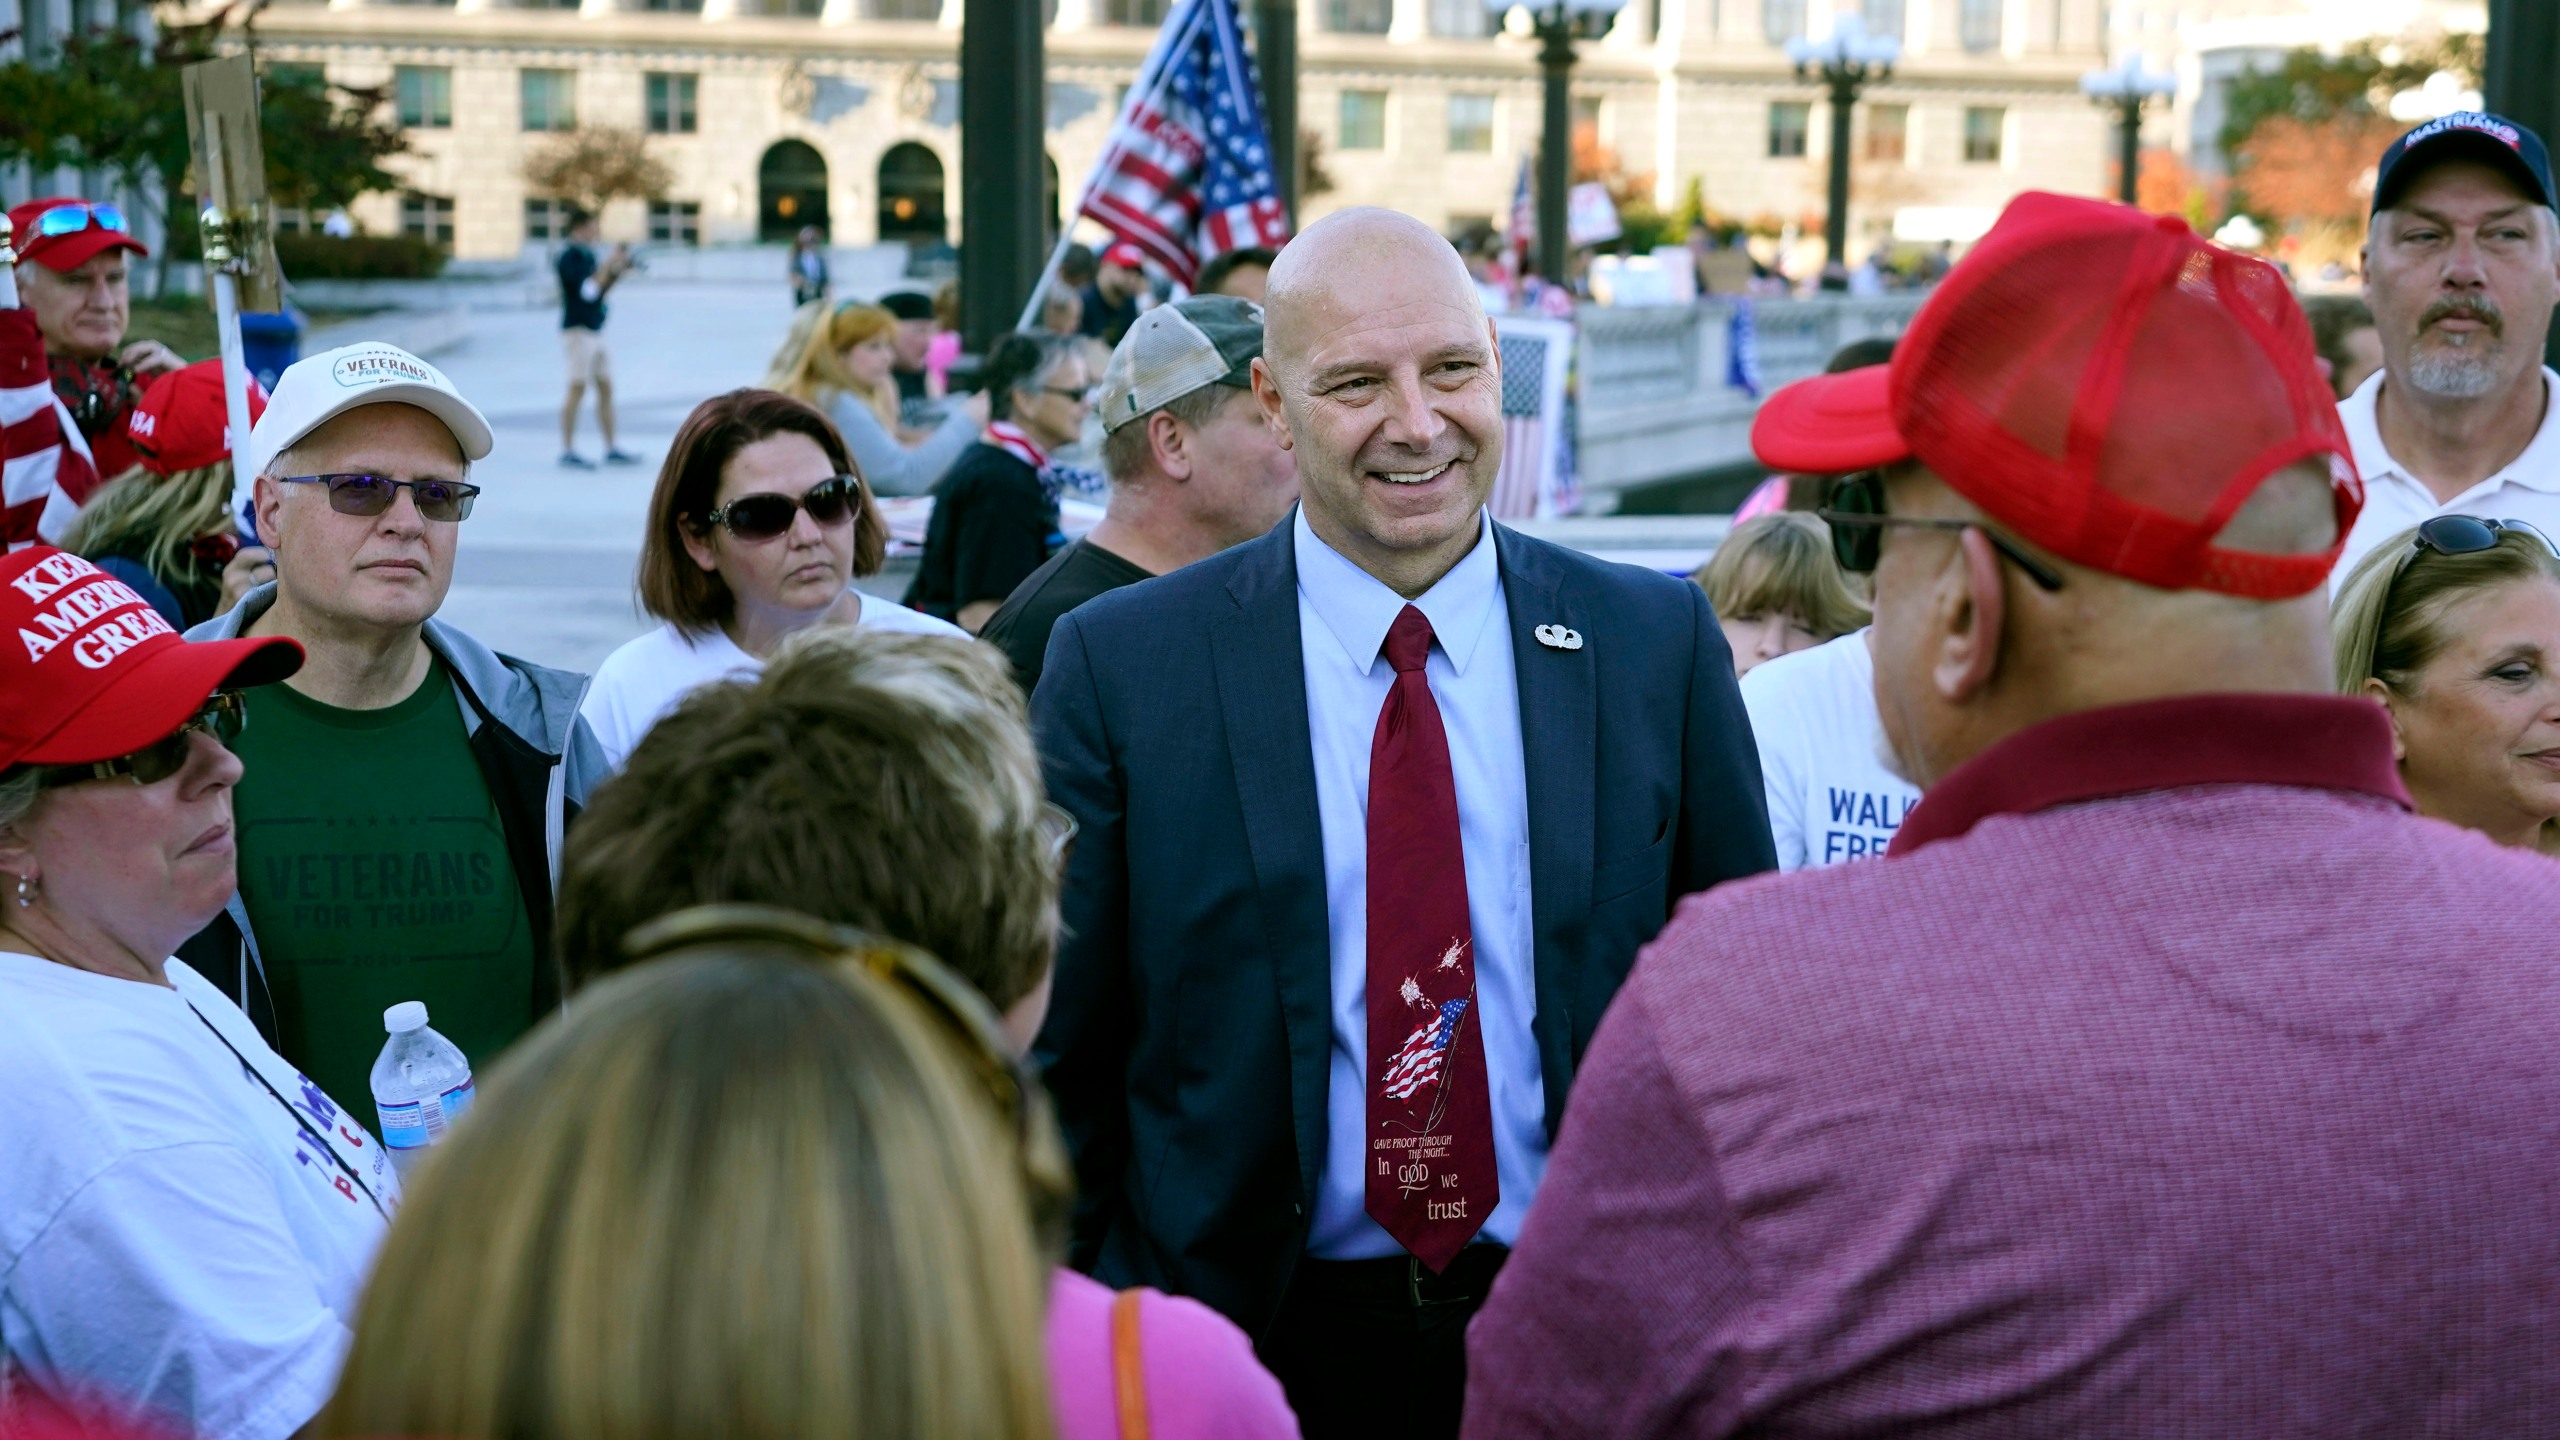 Pennsylvania state Sen. Doug Mastriano, R-Franklin, center, speaks to supporters of President Donald Trump as they demonstrate outside the Pennsylvania State Capitol, Saturday, Nov. 7, 2020, in Harrisburg, Pa., after Democrat Joe Biden defeated Trump to become 46th president of the United States. (Julio Cortez/AP Photo)